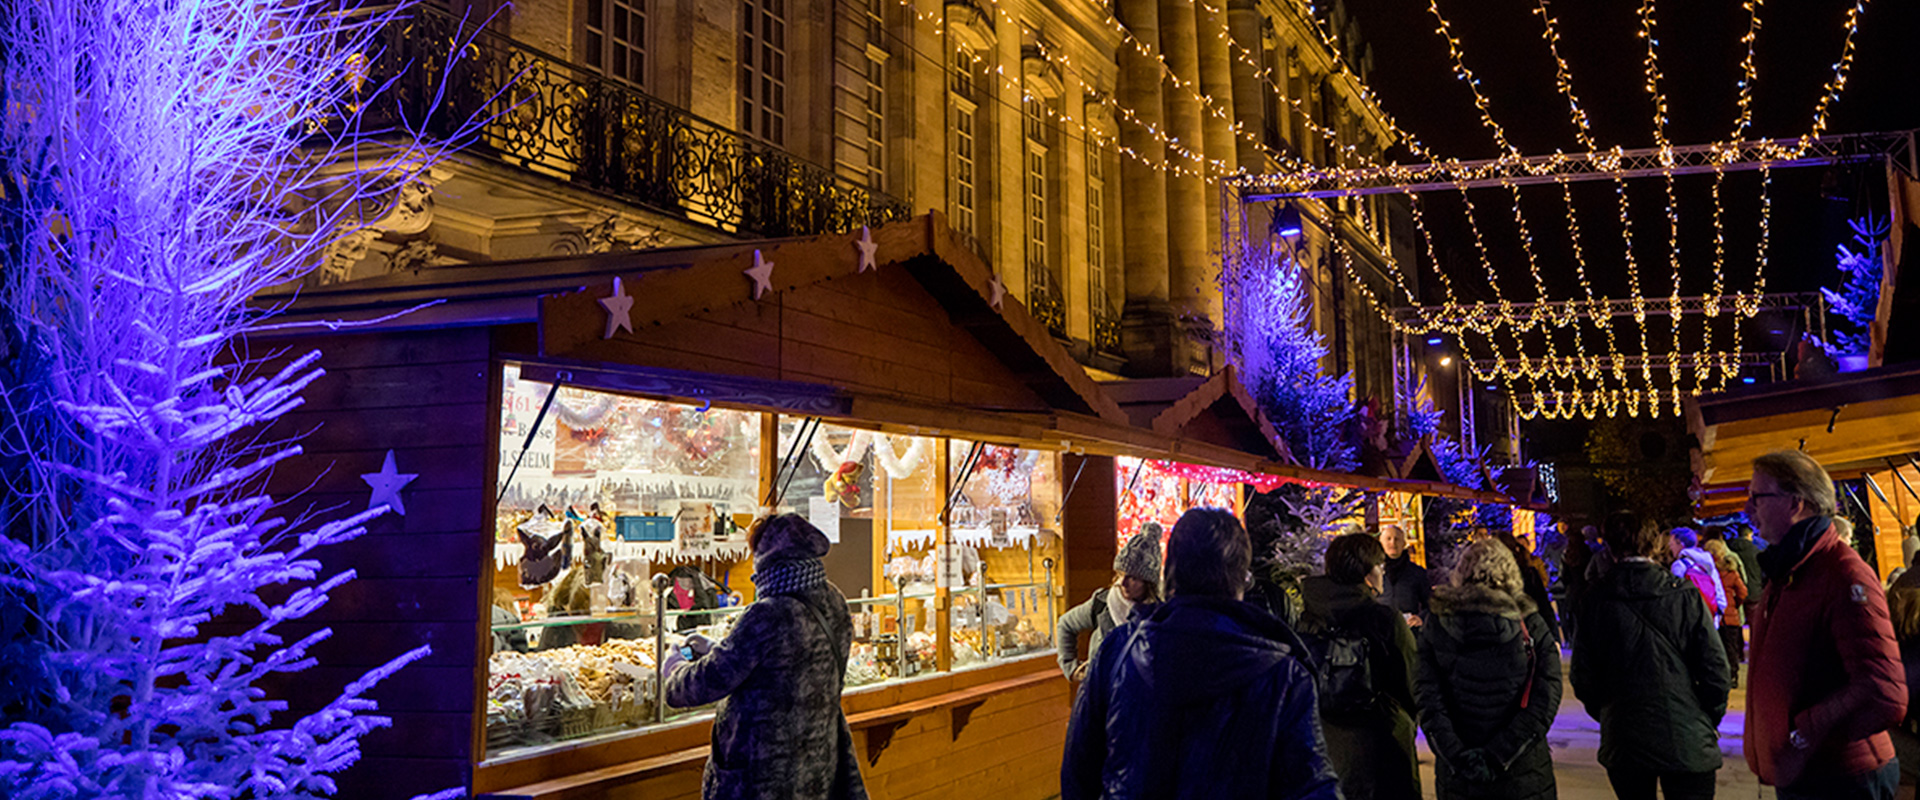 Strasbourg Capital of Christmas in 1 day: the must-see highlights